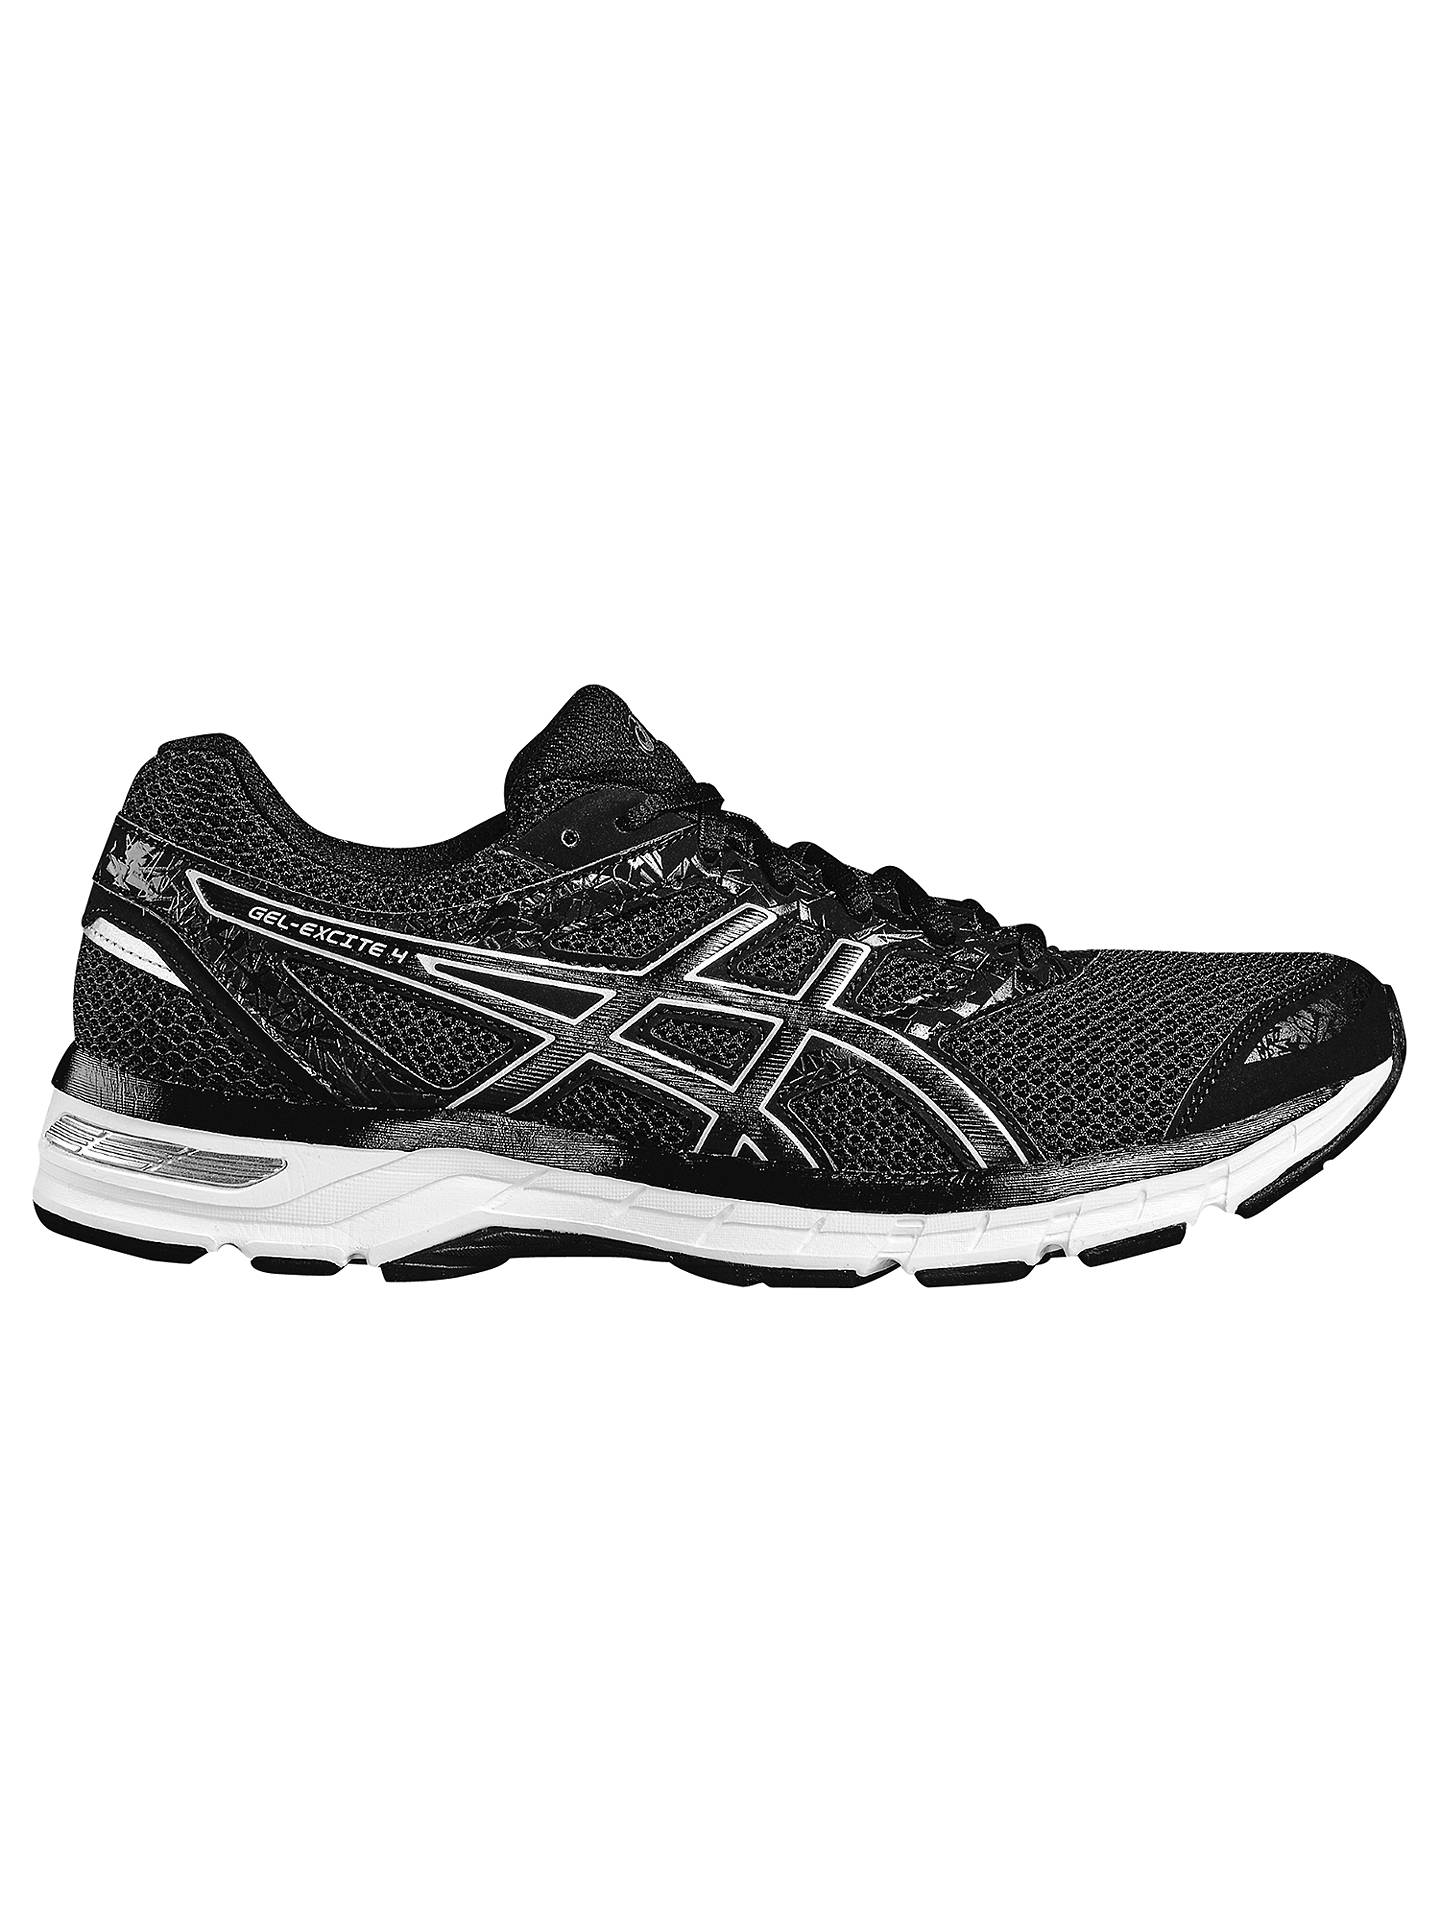 BuyAsics GEL-EXCITE 4 Men s Running Shoes 4e47cfa89f79b